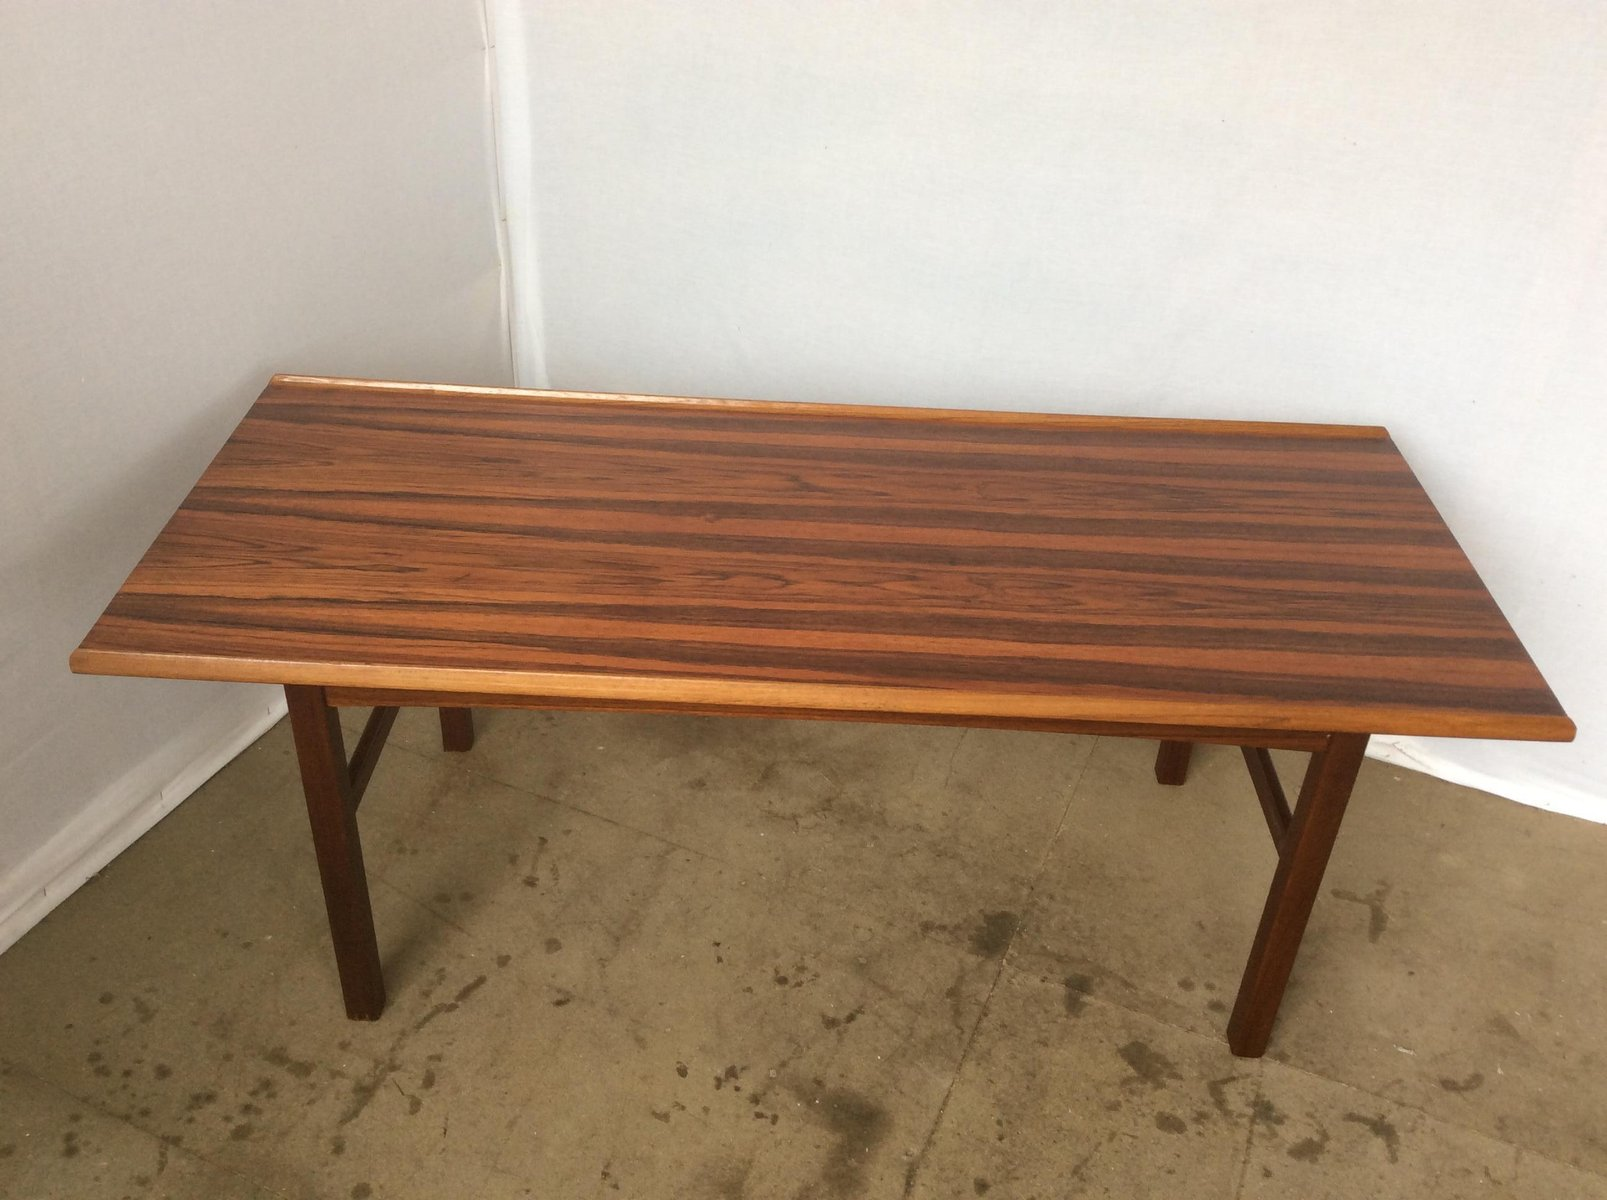 Danish Rosewood Coffee Table By Anton Kildeberg 1960s For Sale At Pamono